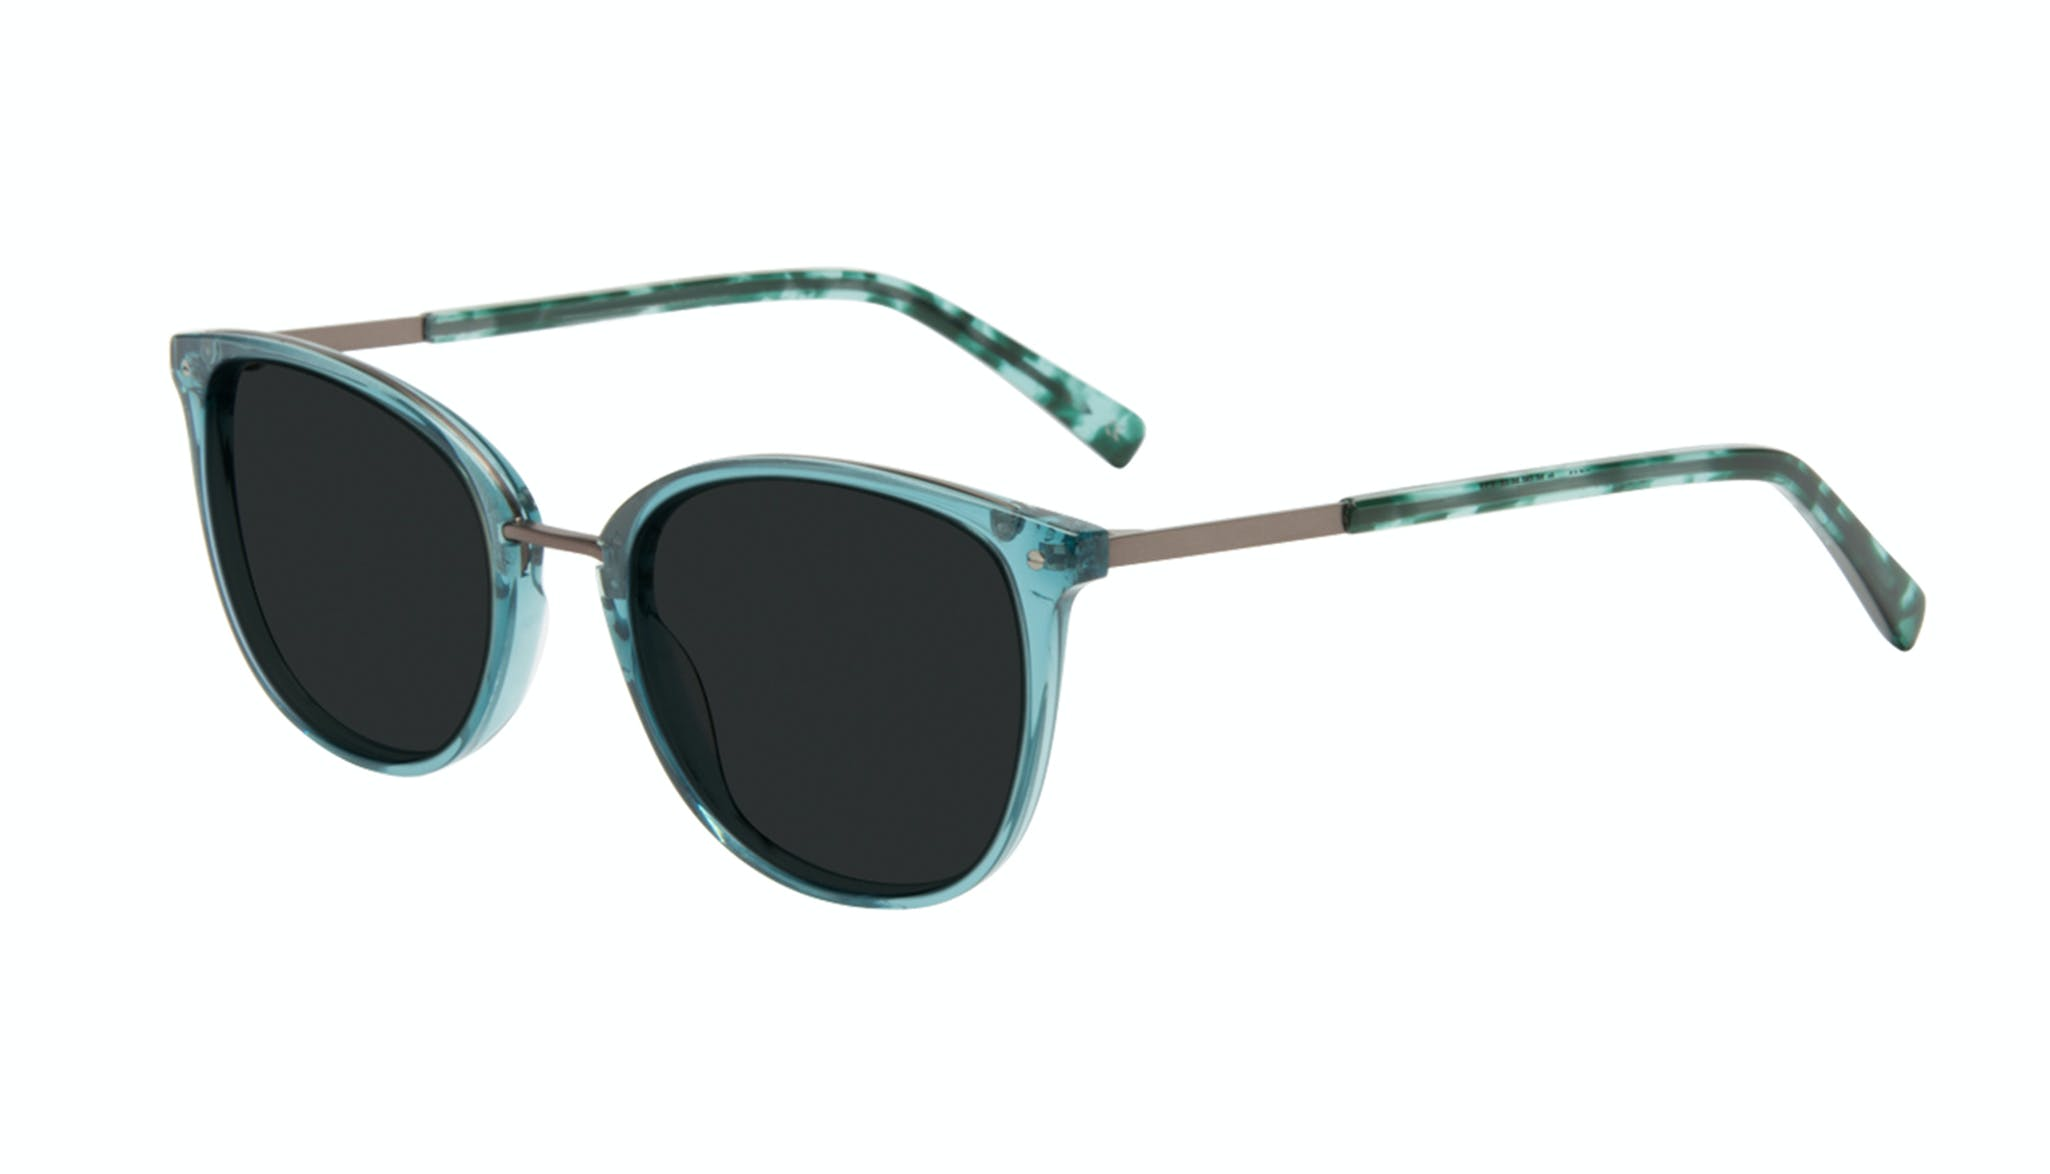 Affordable Fashion Glasses Square Round Sunglasses Women Bella Teal Tilt